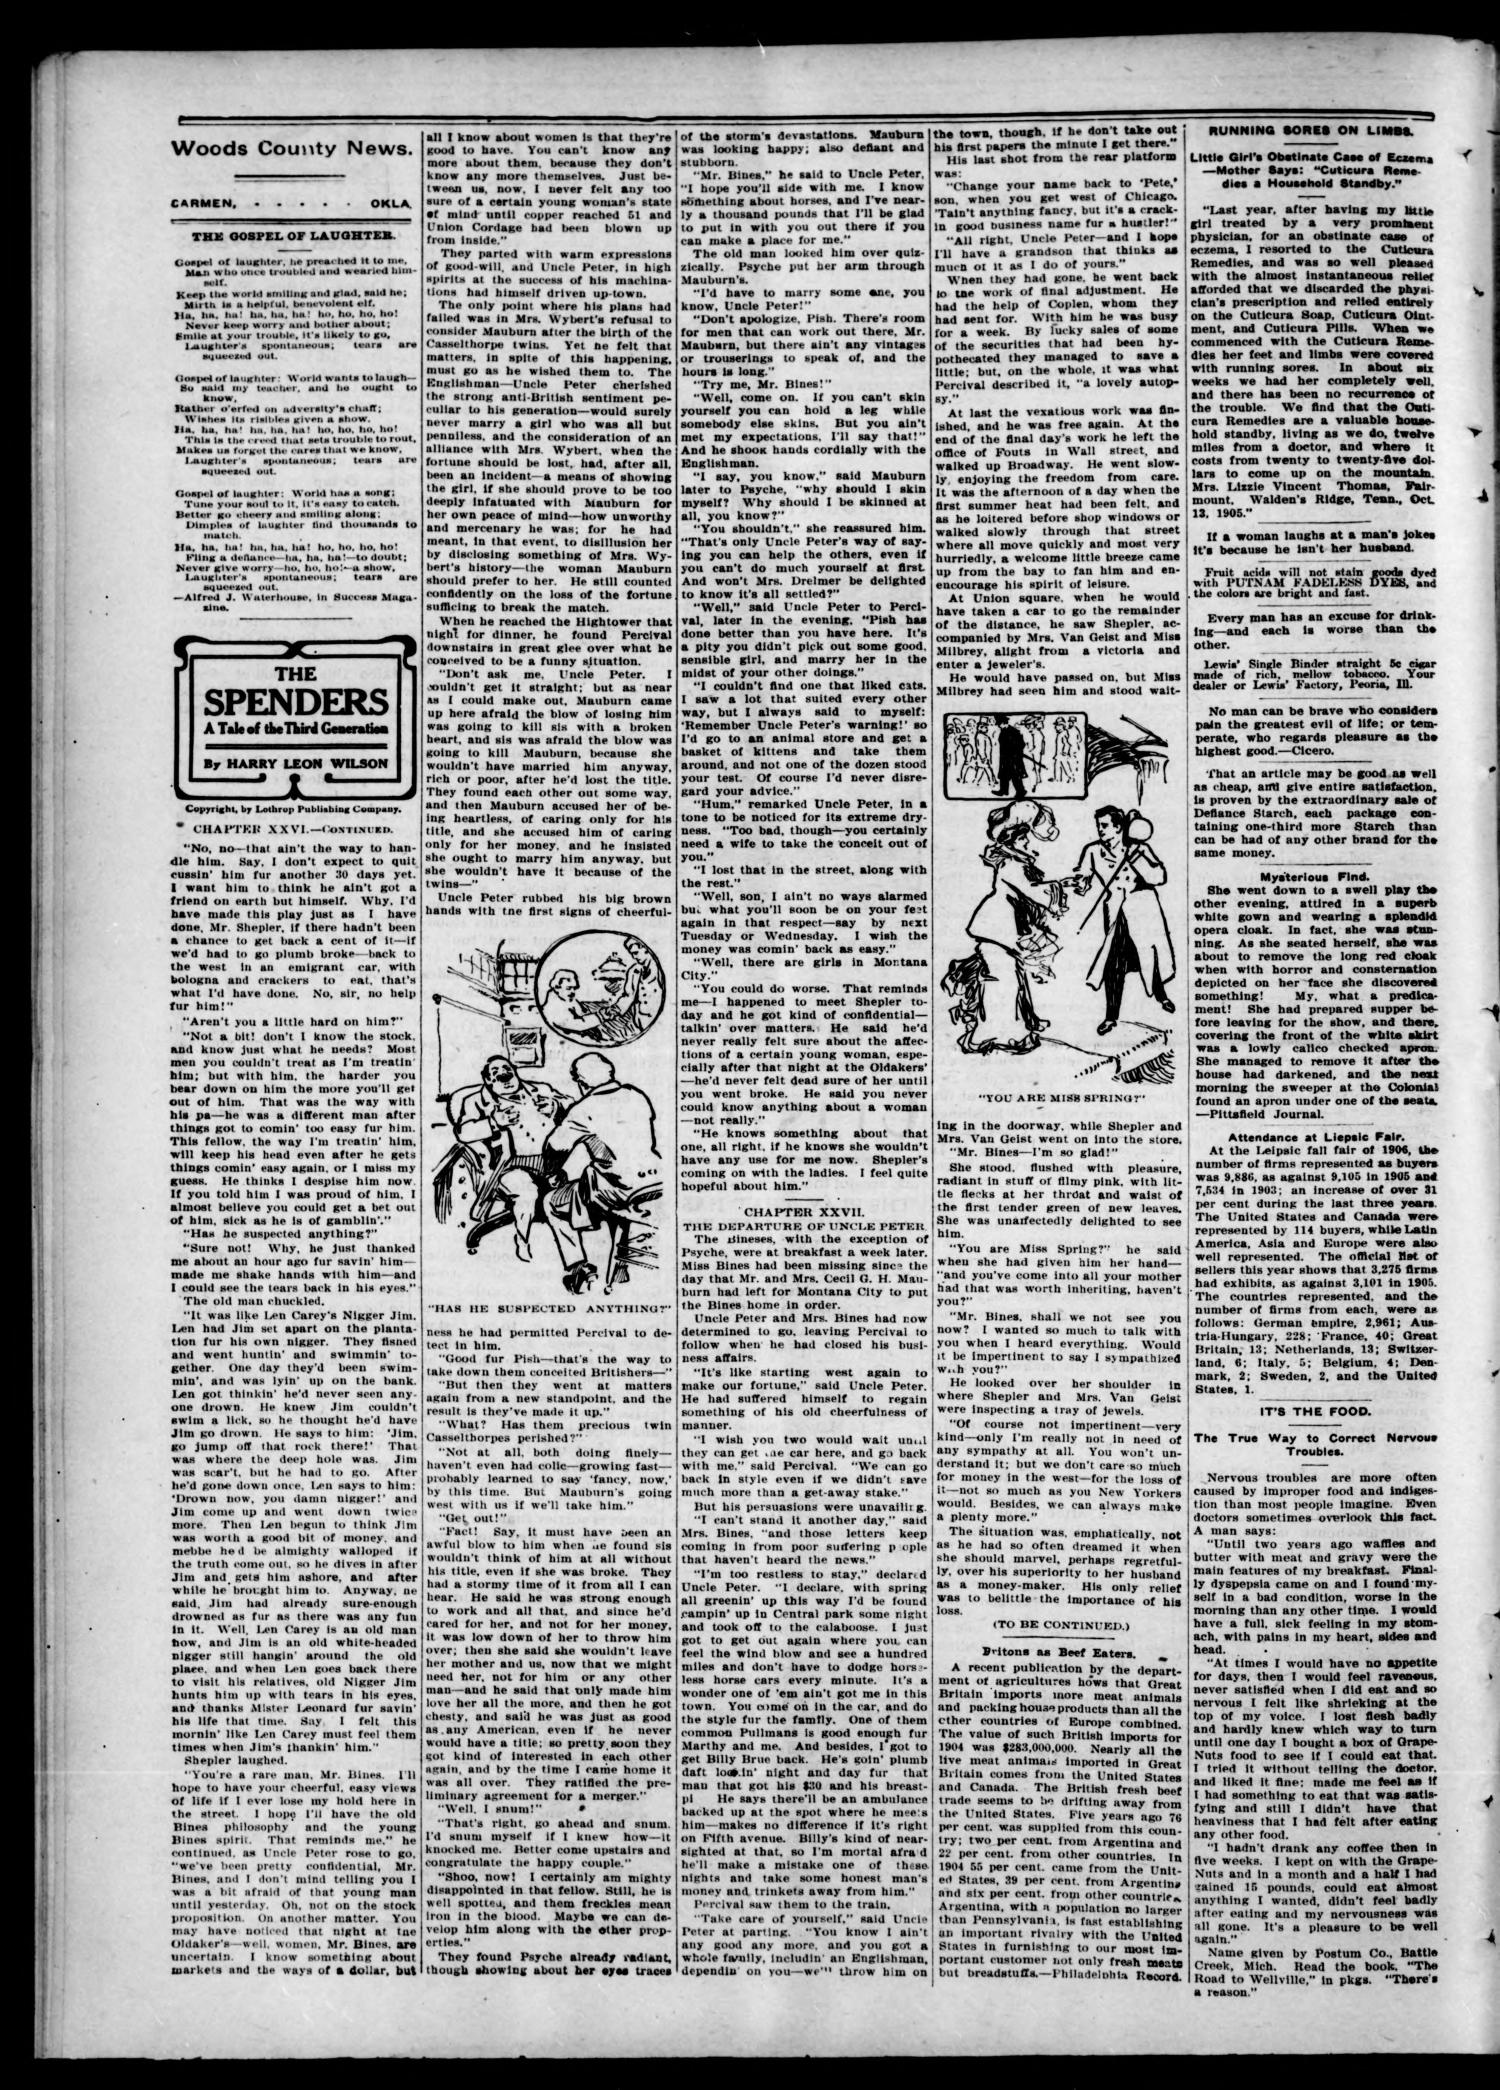 Woods County News. (Carmen, Okla.), Vol. 8, No. 51, Ed. 1 Friday, November 16, 1906                                                                                                      [Sequence #]: 2 of 8